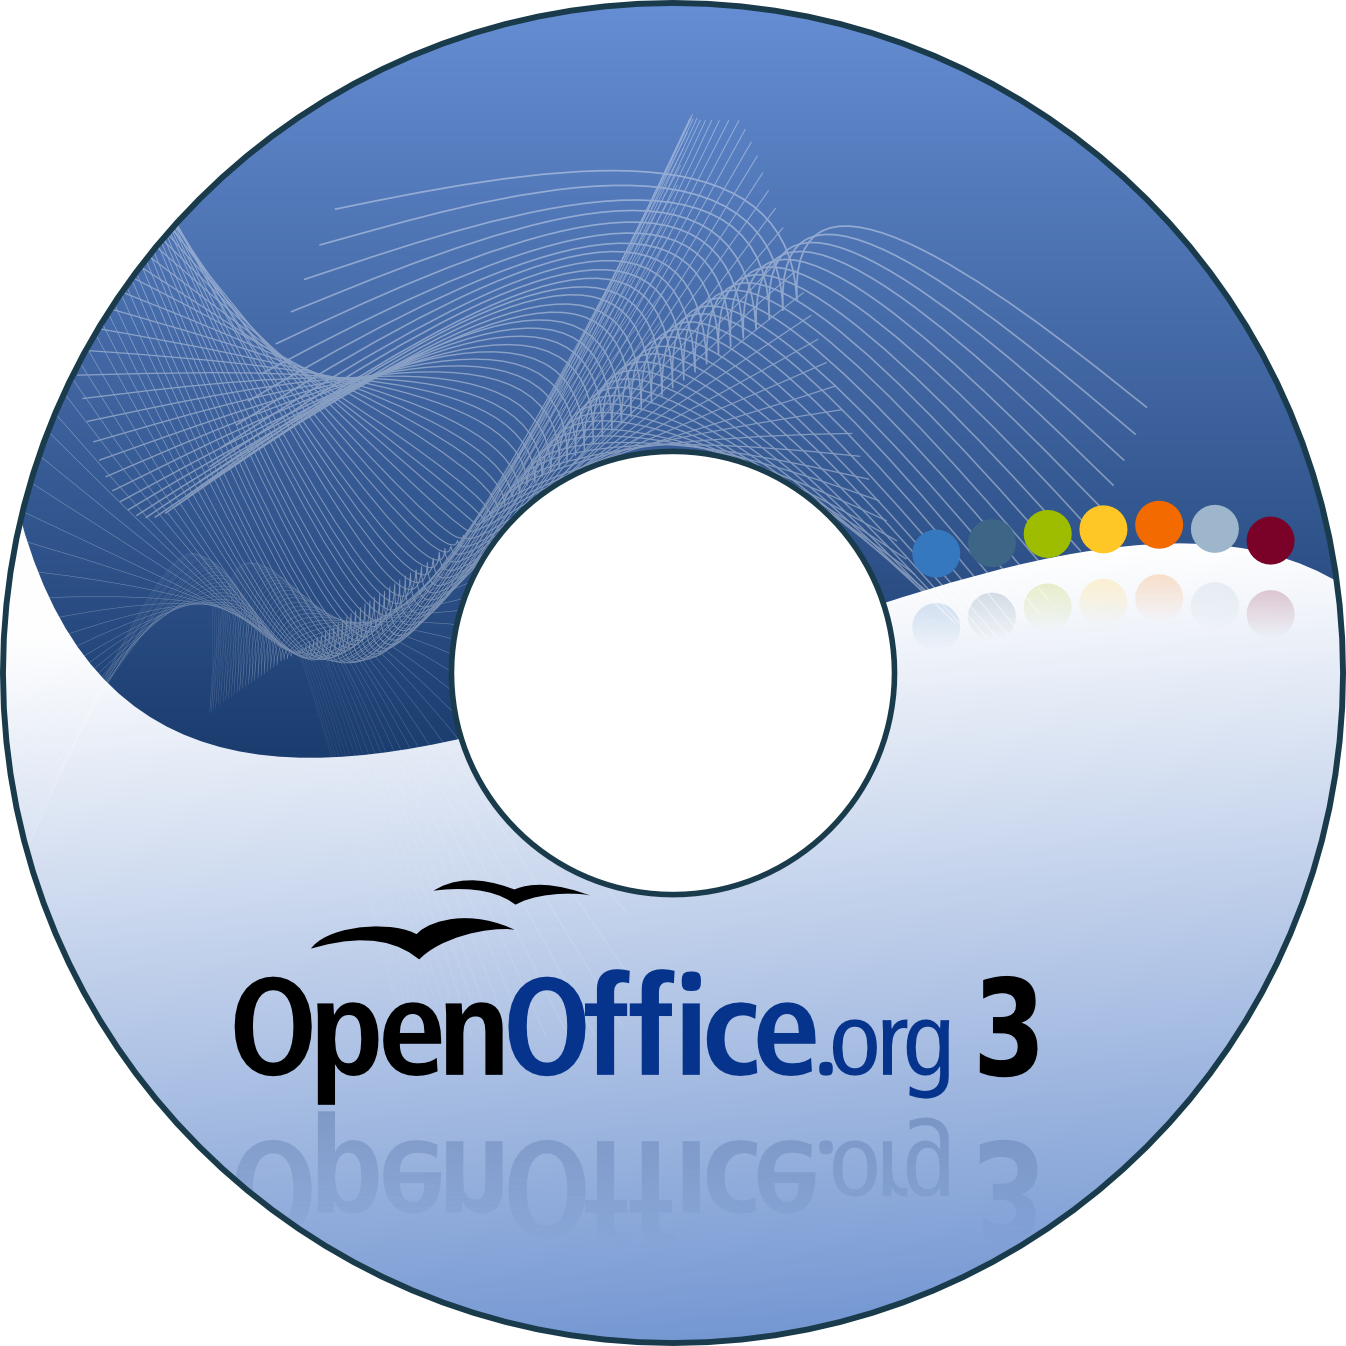 Asf Revision 1831417 Openoffice Ooo Site Trunk Content